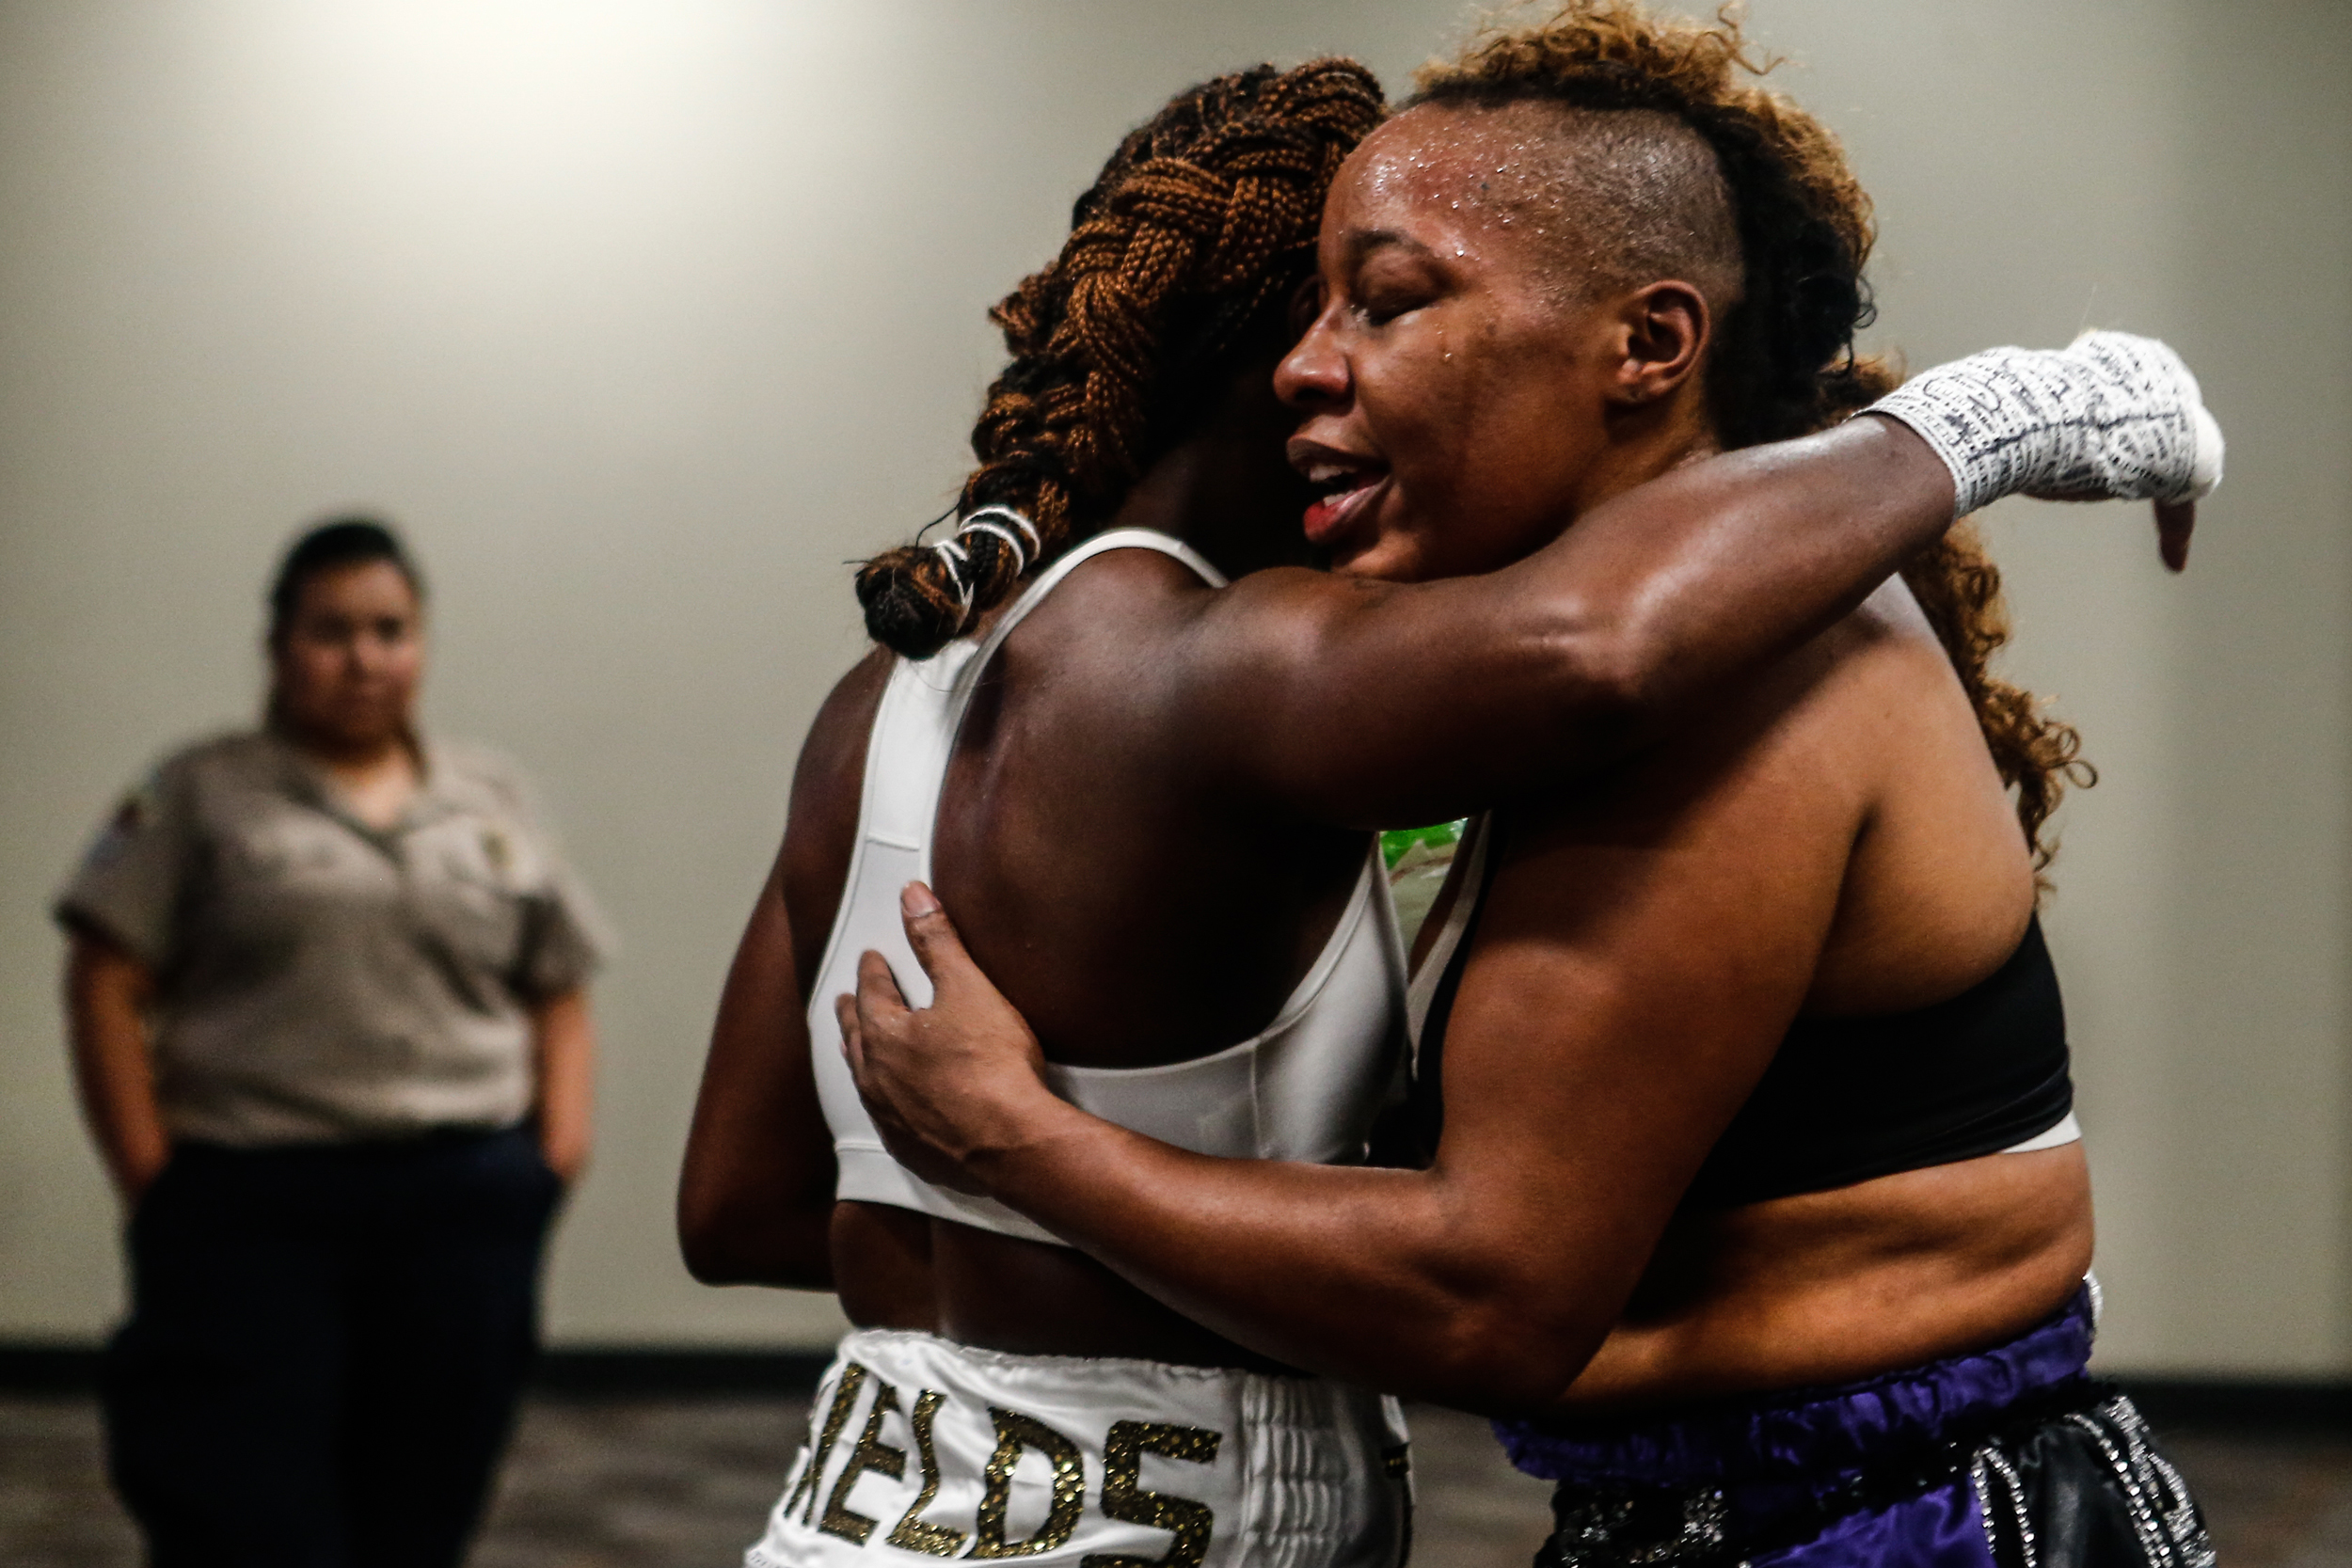 Claressa Shields, two-time Olympic gold medalist boxer, and opponent Franchon Crews gives each other a hug after their four-round bout on November 19th at the T-Mobile Arena in Las Vegas.